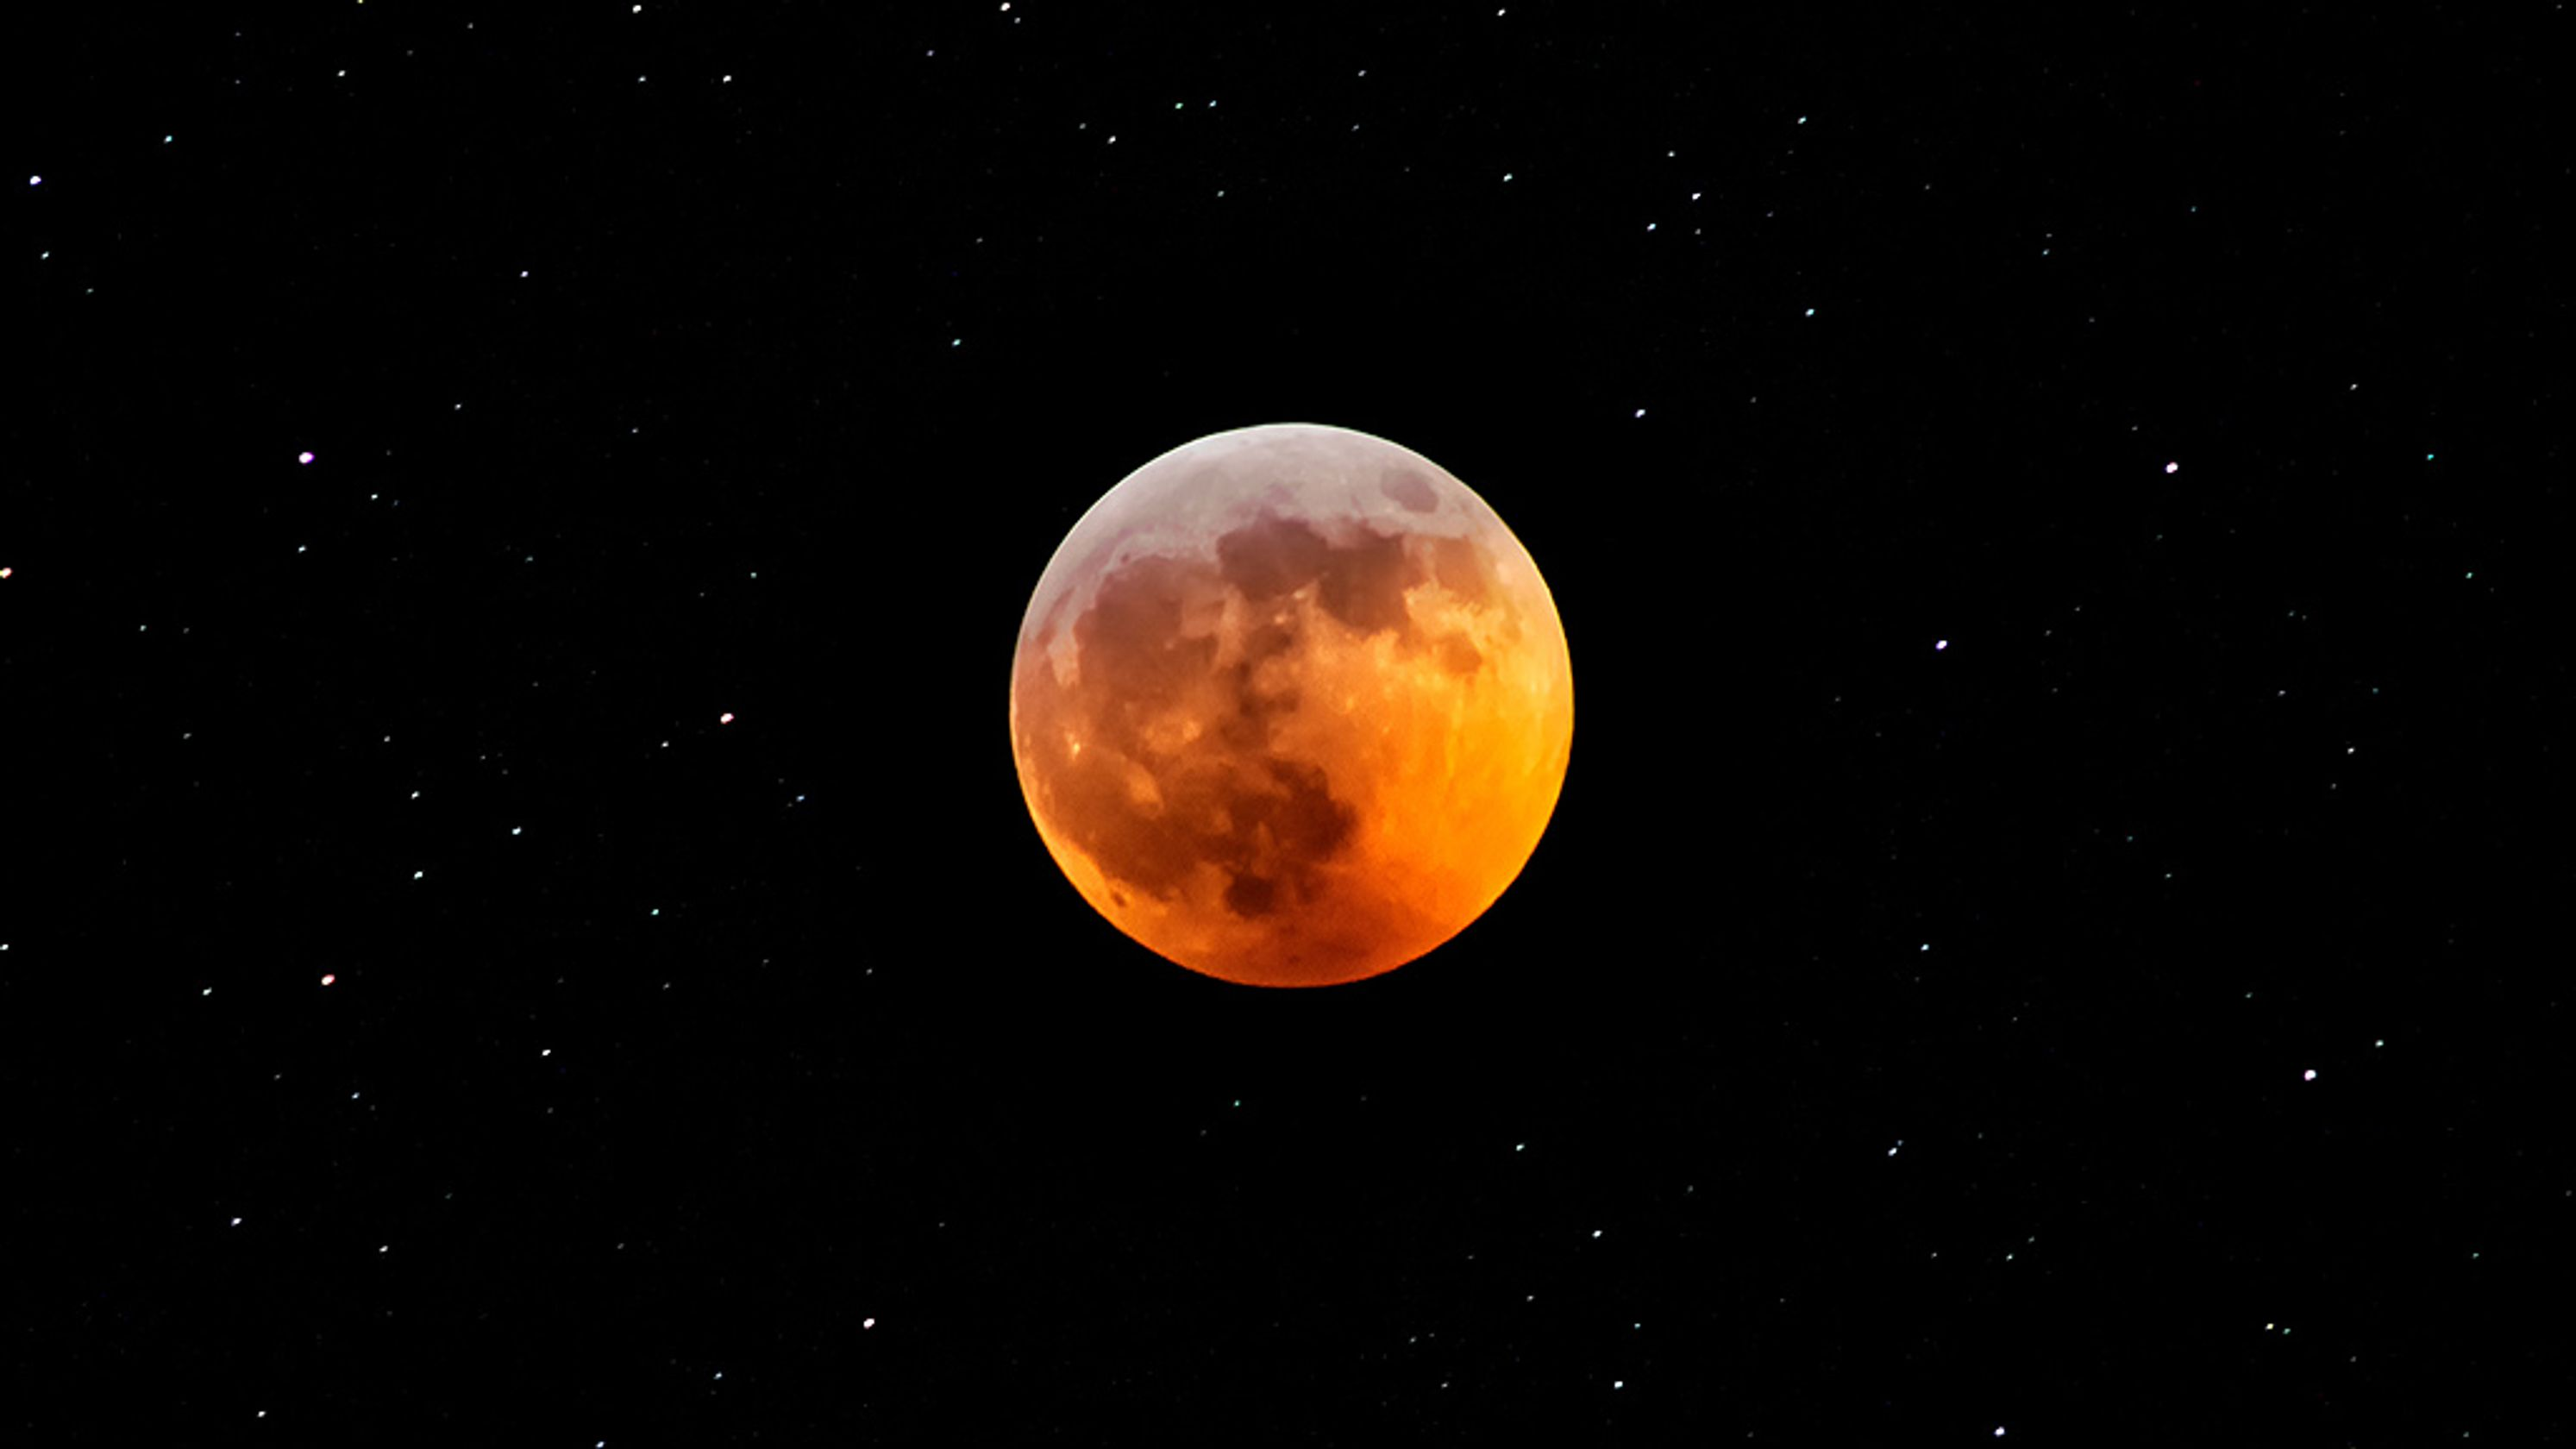 blood moon january 2019 austin tx - photo #18